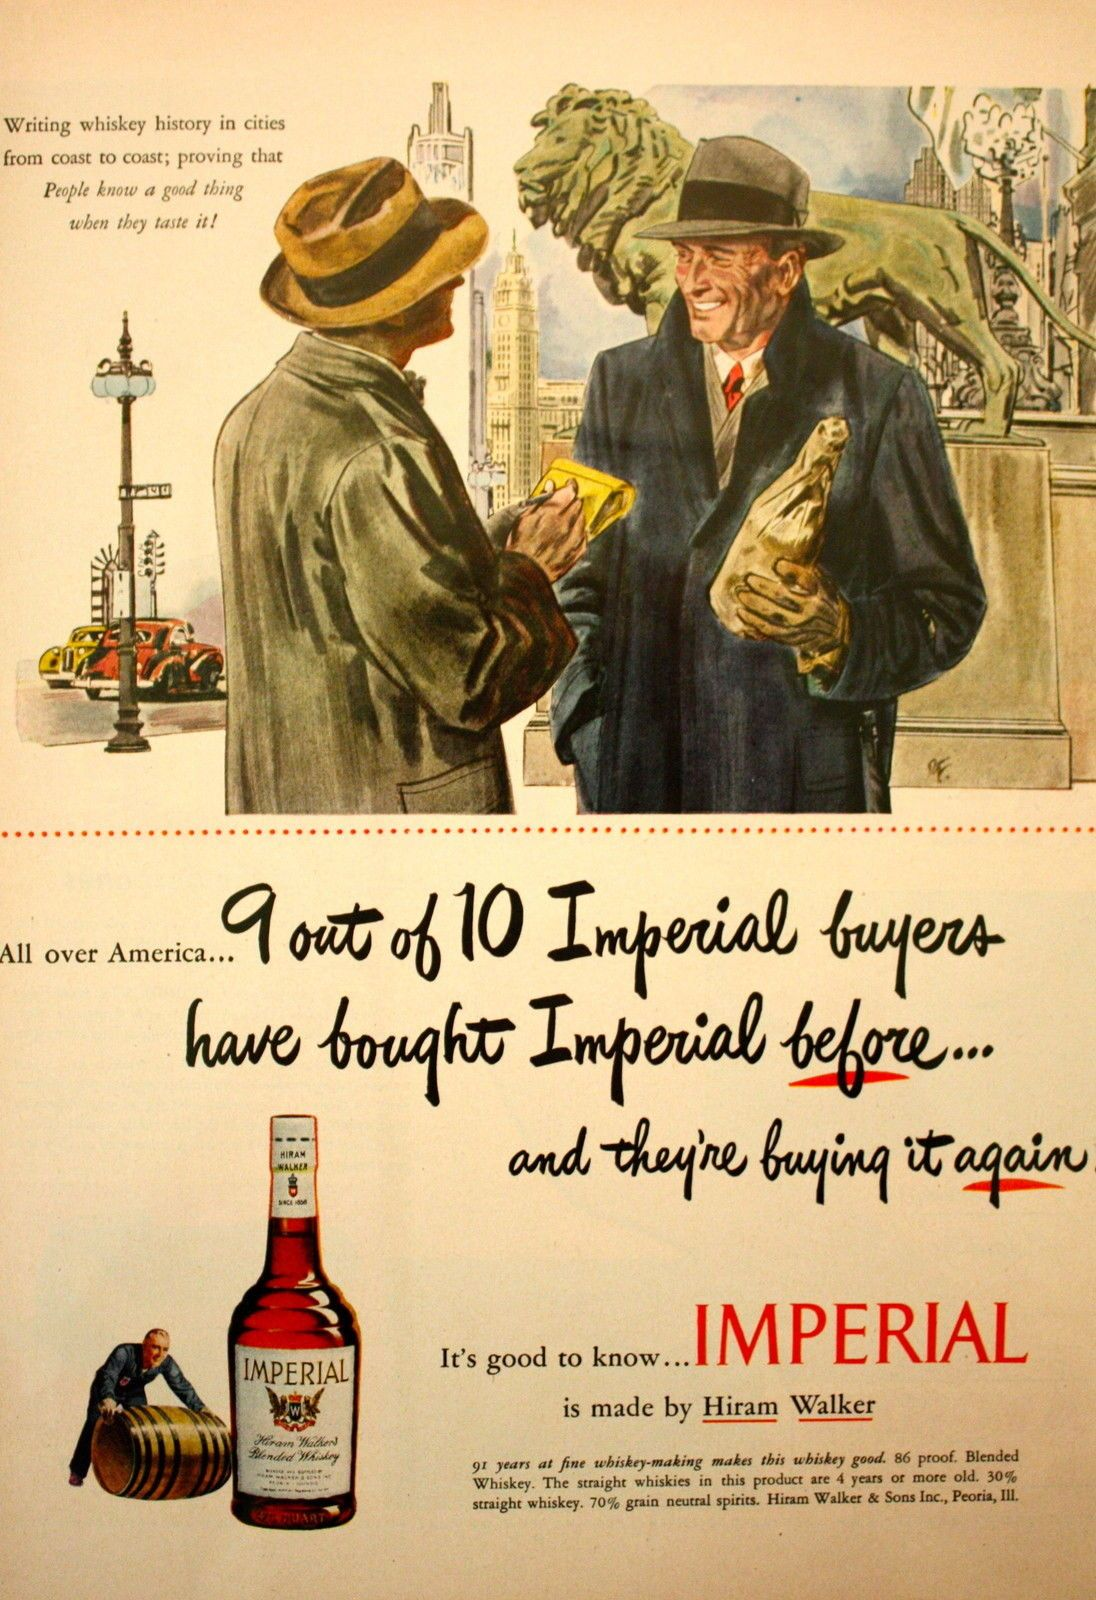 1948 Imperial Whiskey Reporter Man Chicago Art Institute